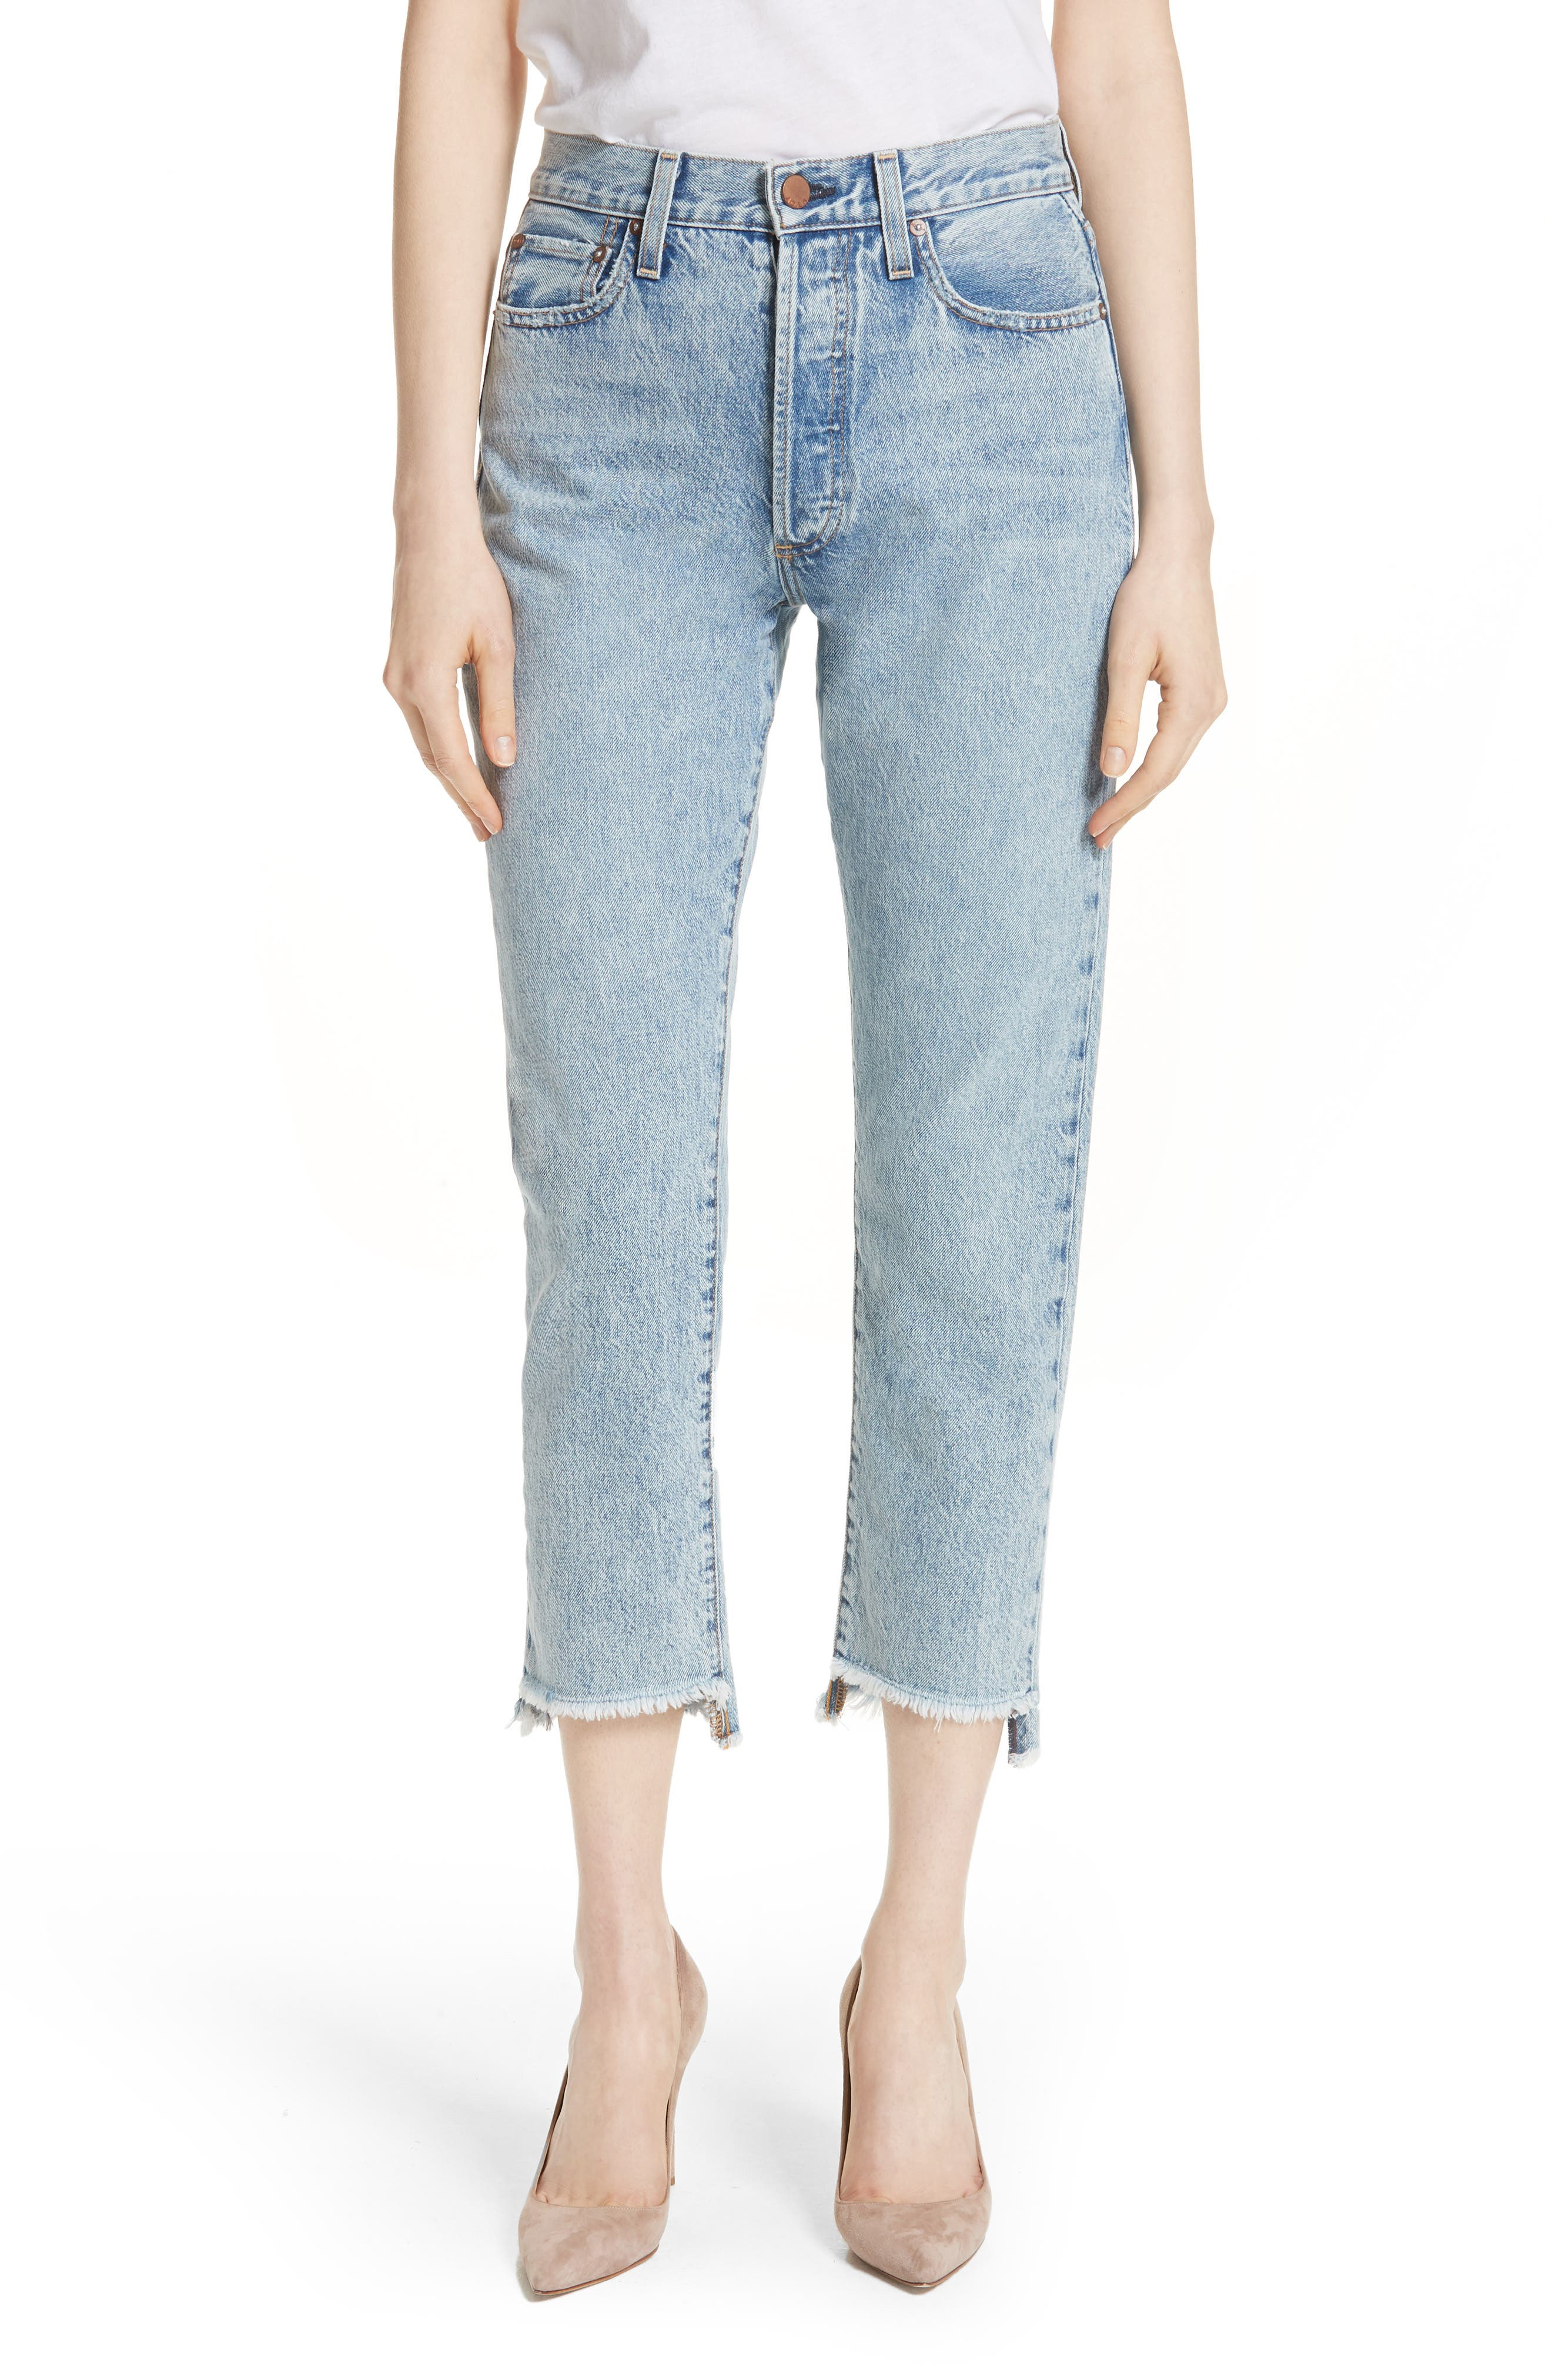 AO.LA Amazing Good Luck Slim Girlfriend Jeans,                             Main thumbnail 1, color,                             Out Of Sight/ Gold